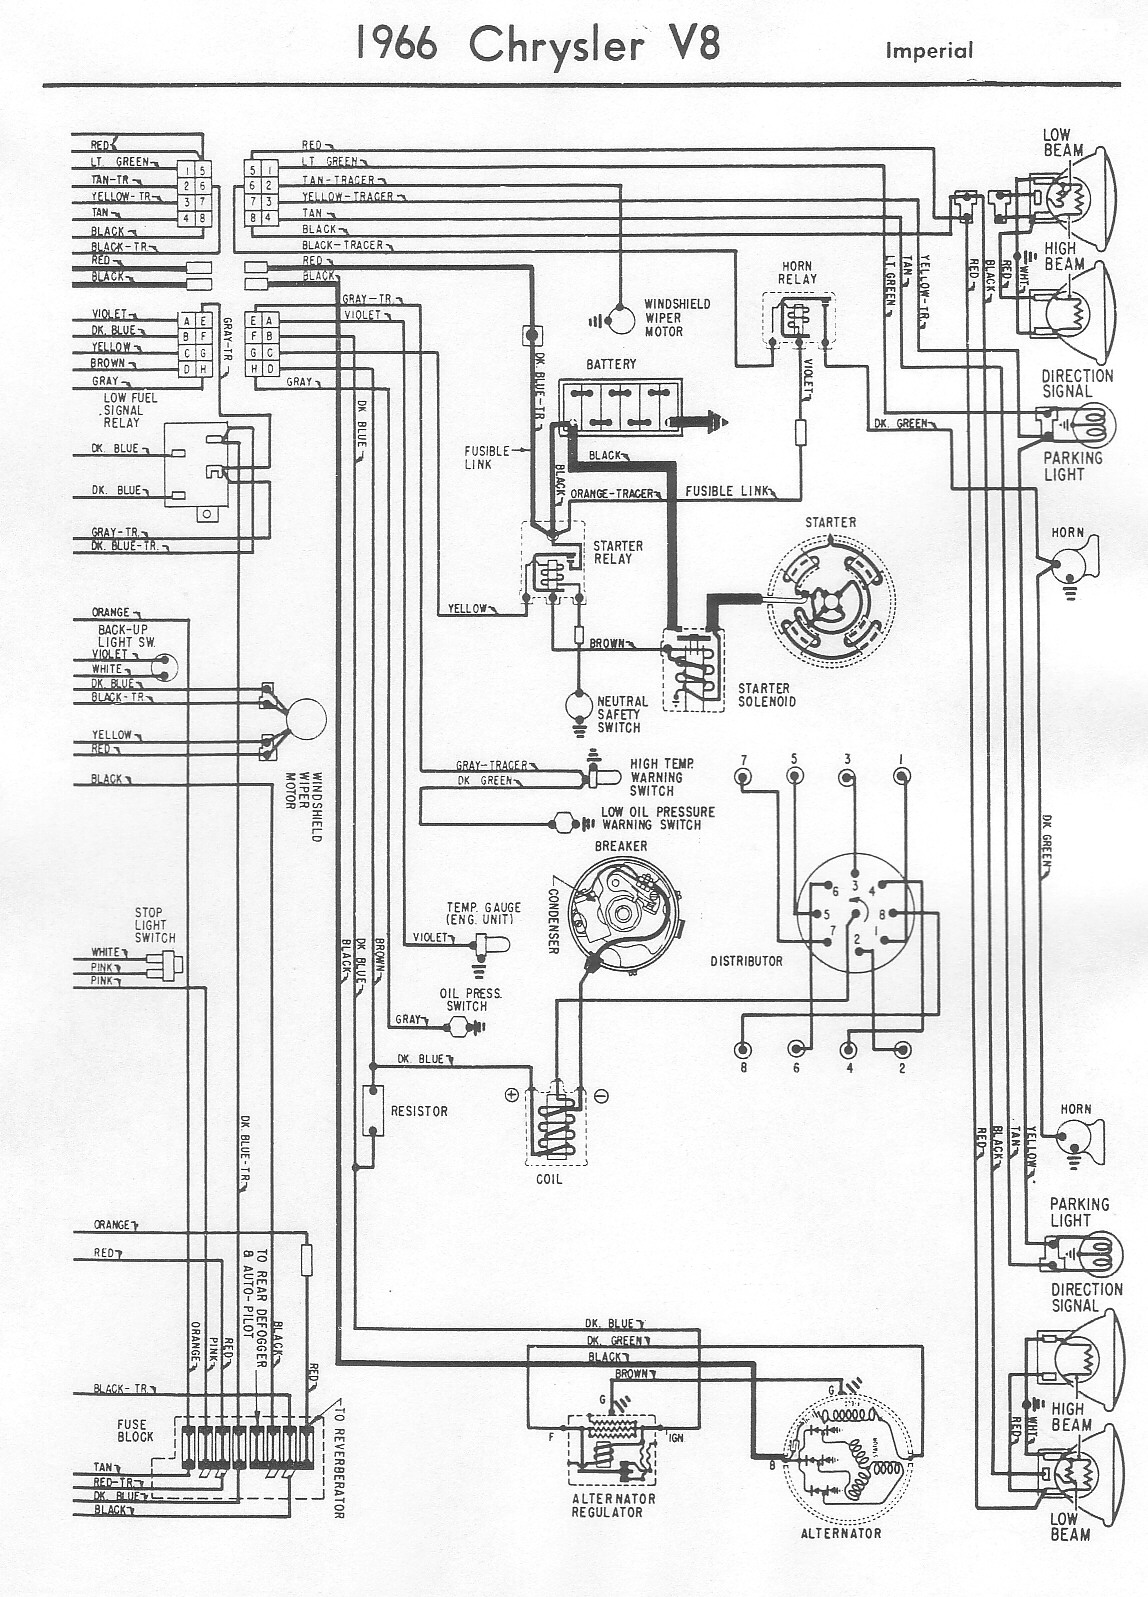 Bluebird Vision Wiring Schematic Nissan Car Manuals